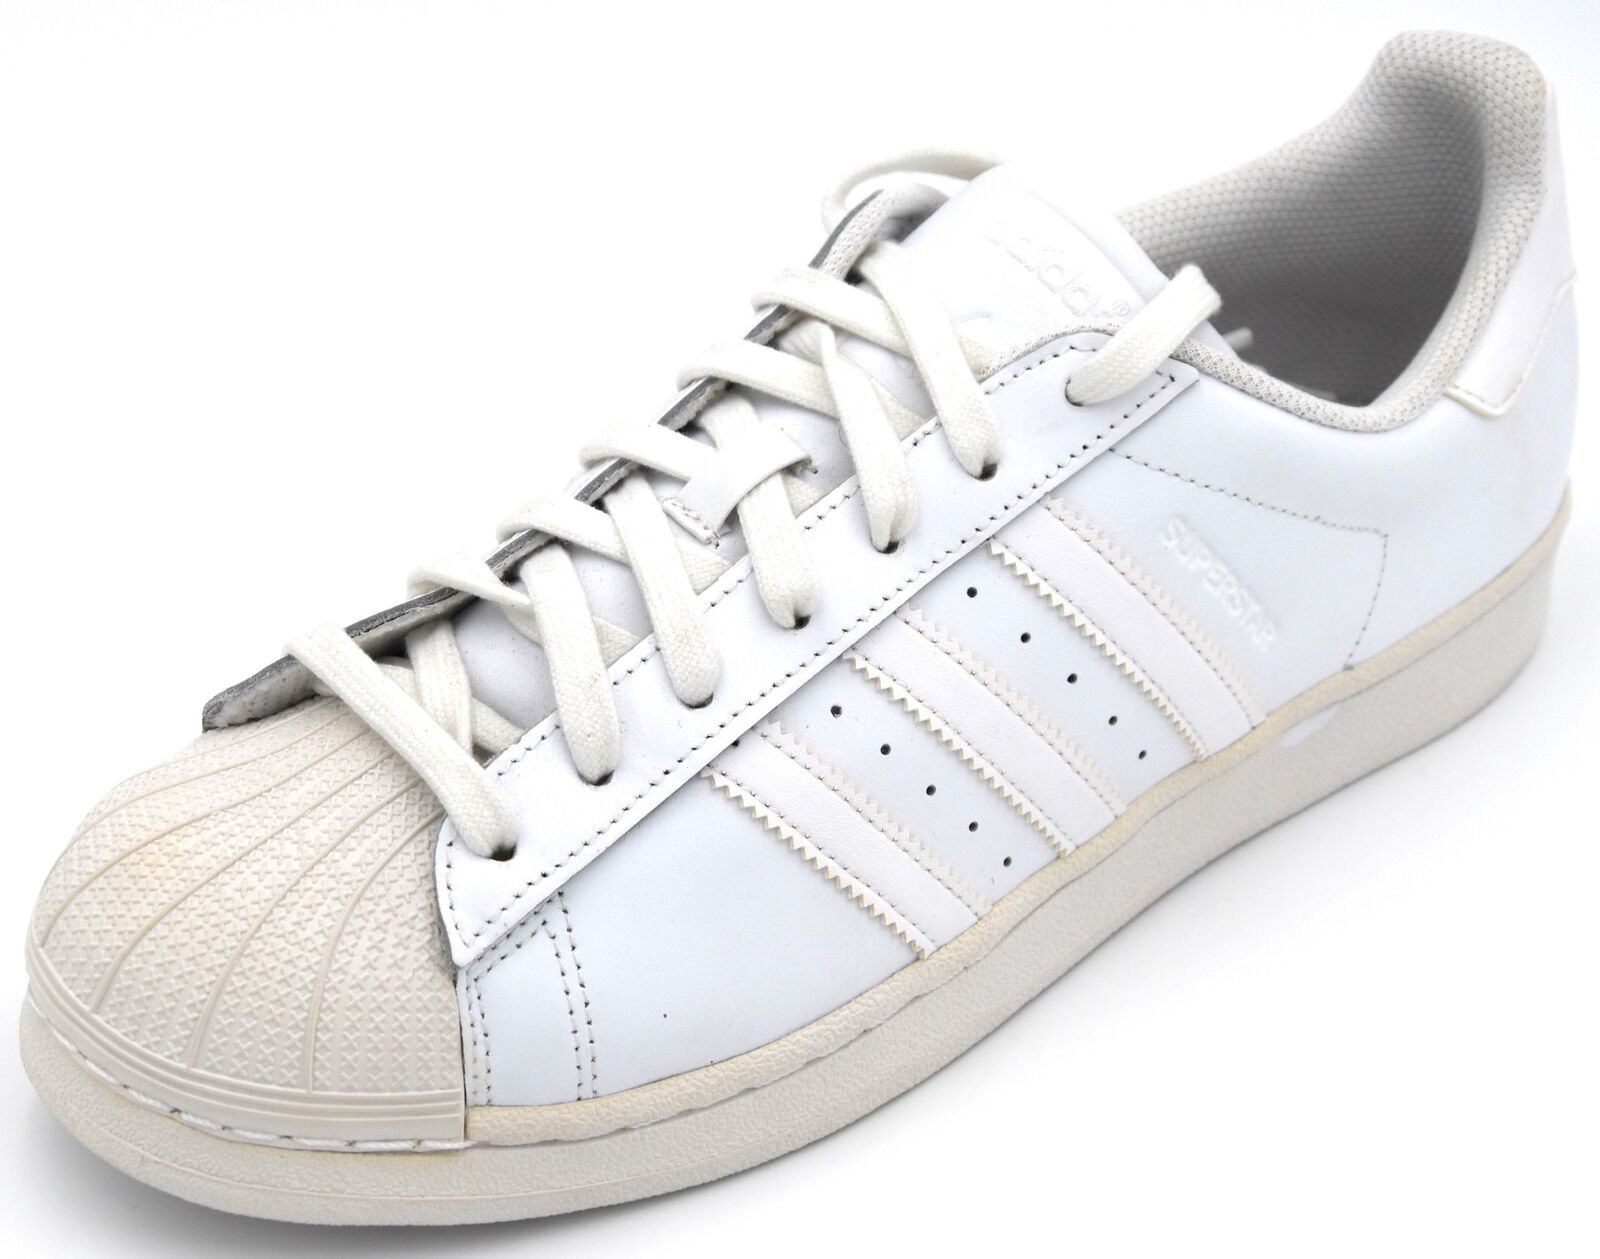 ADIDAS MAN SNEAKER SHOES CASUAL FREE TIME B27136 SUPERSTAR FOUNDATION DEFECT